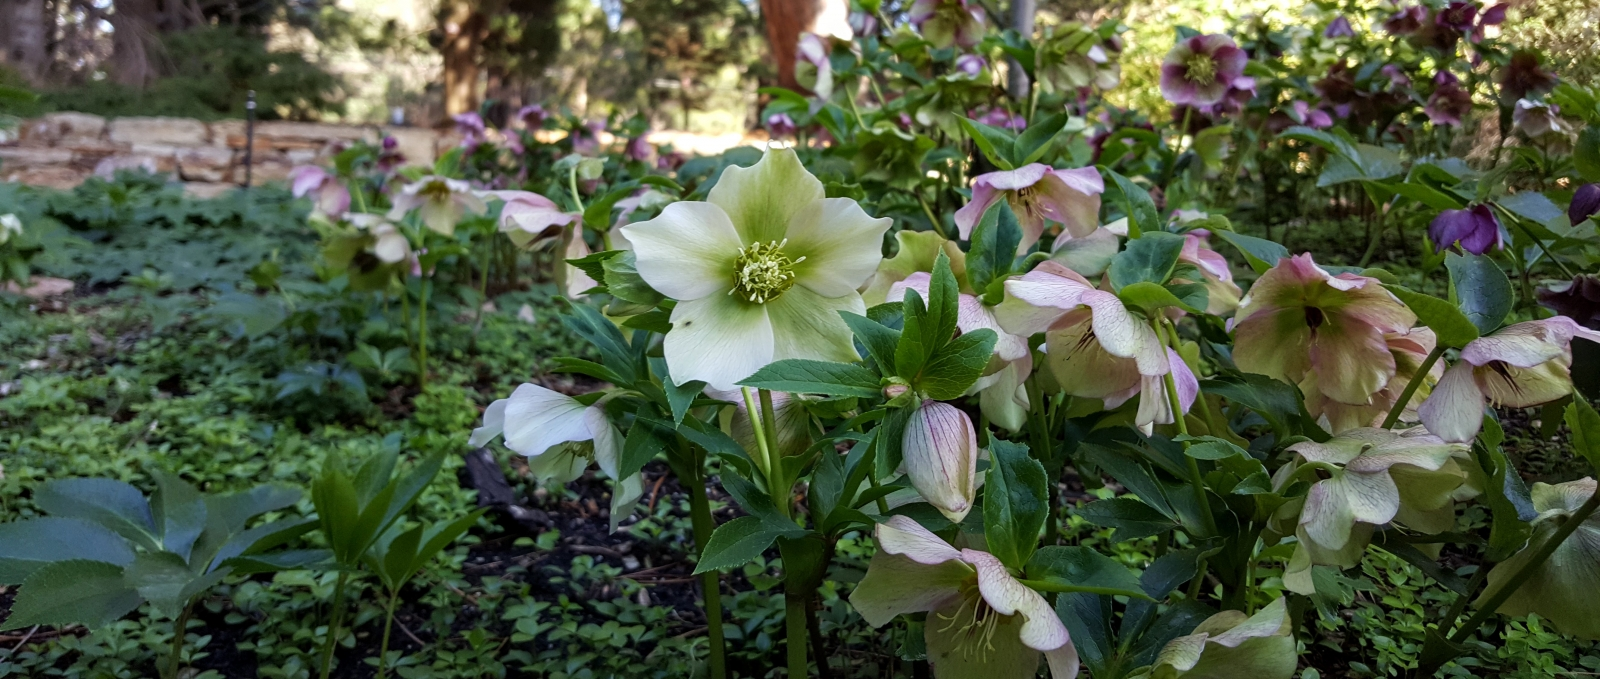 hellebores with wall in background Aug 2016